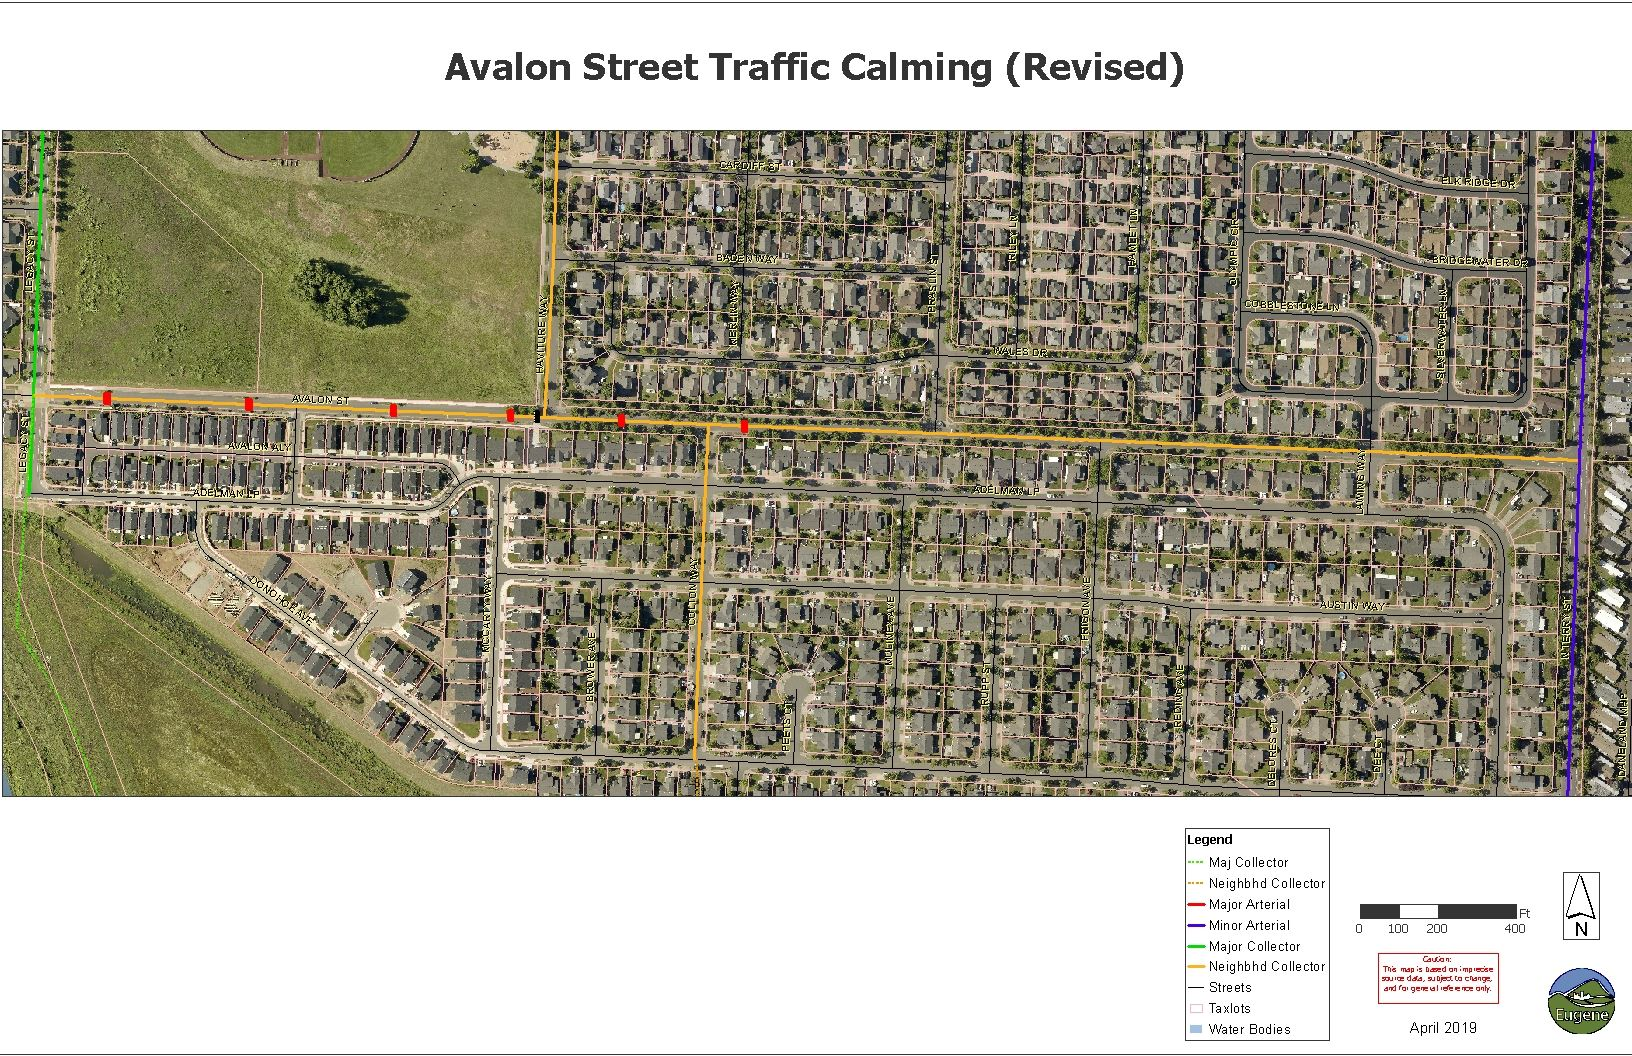 Avalon Street Traffic Calming REVISED 350 ft spacing for display map